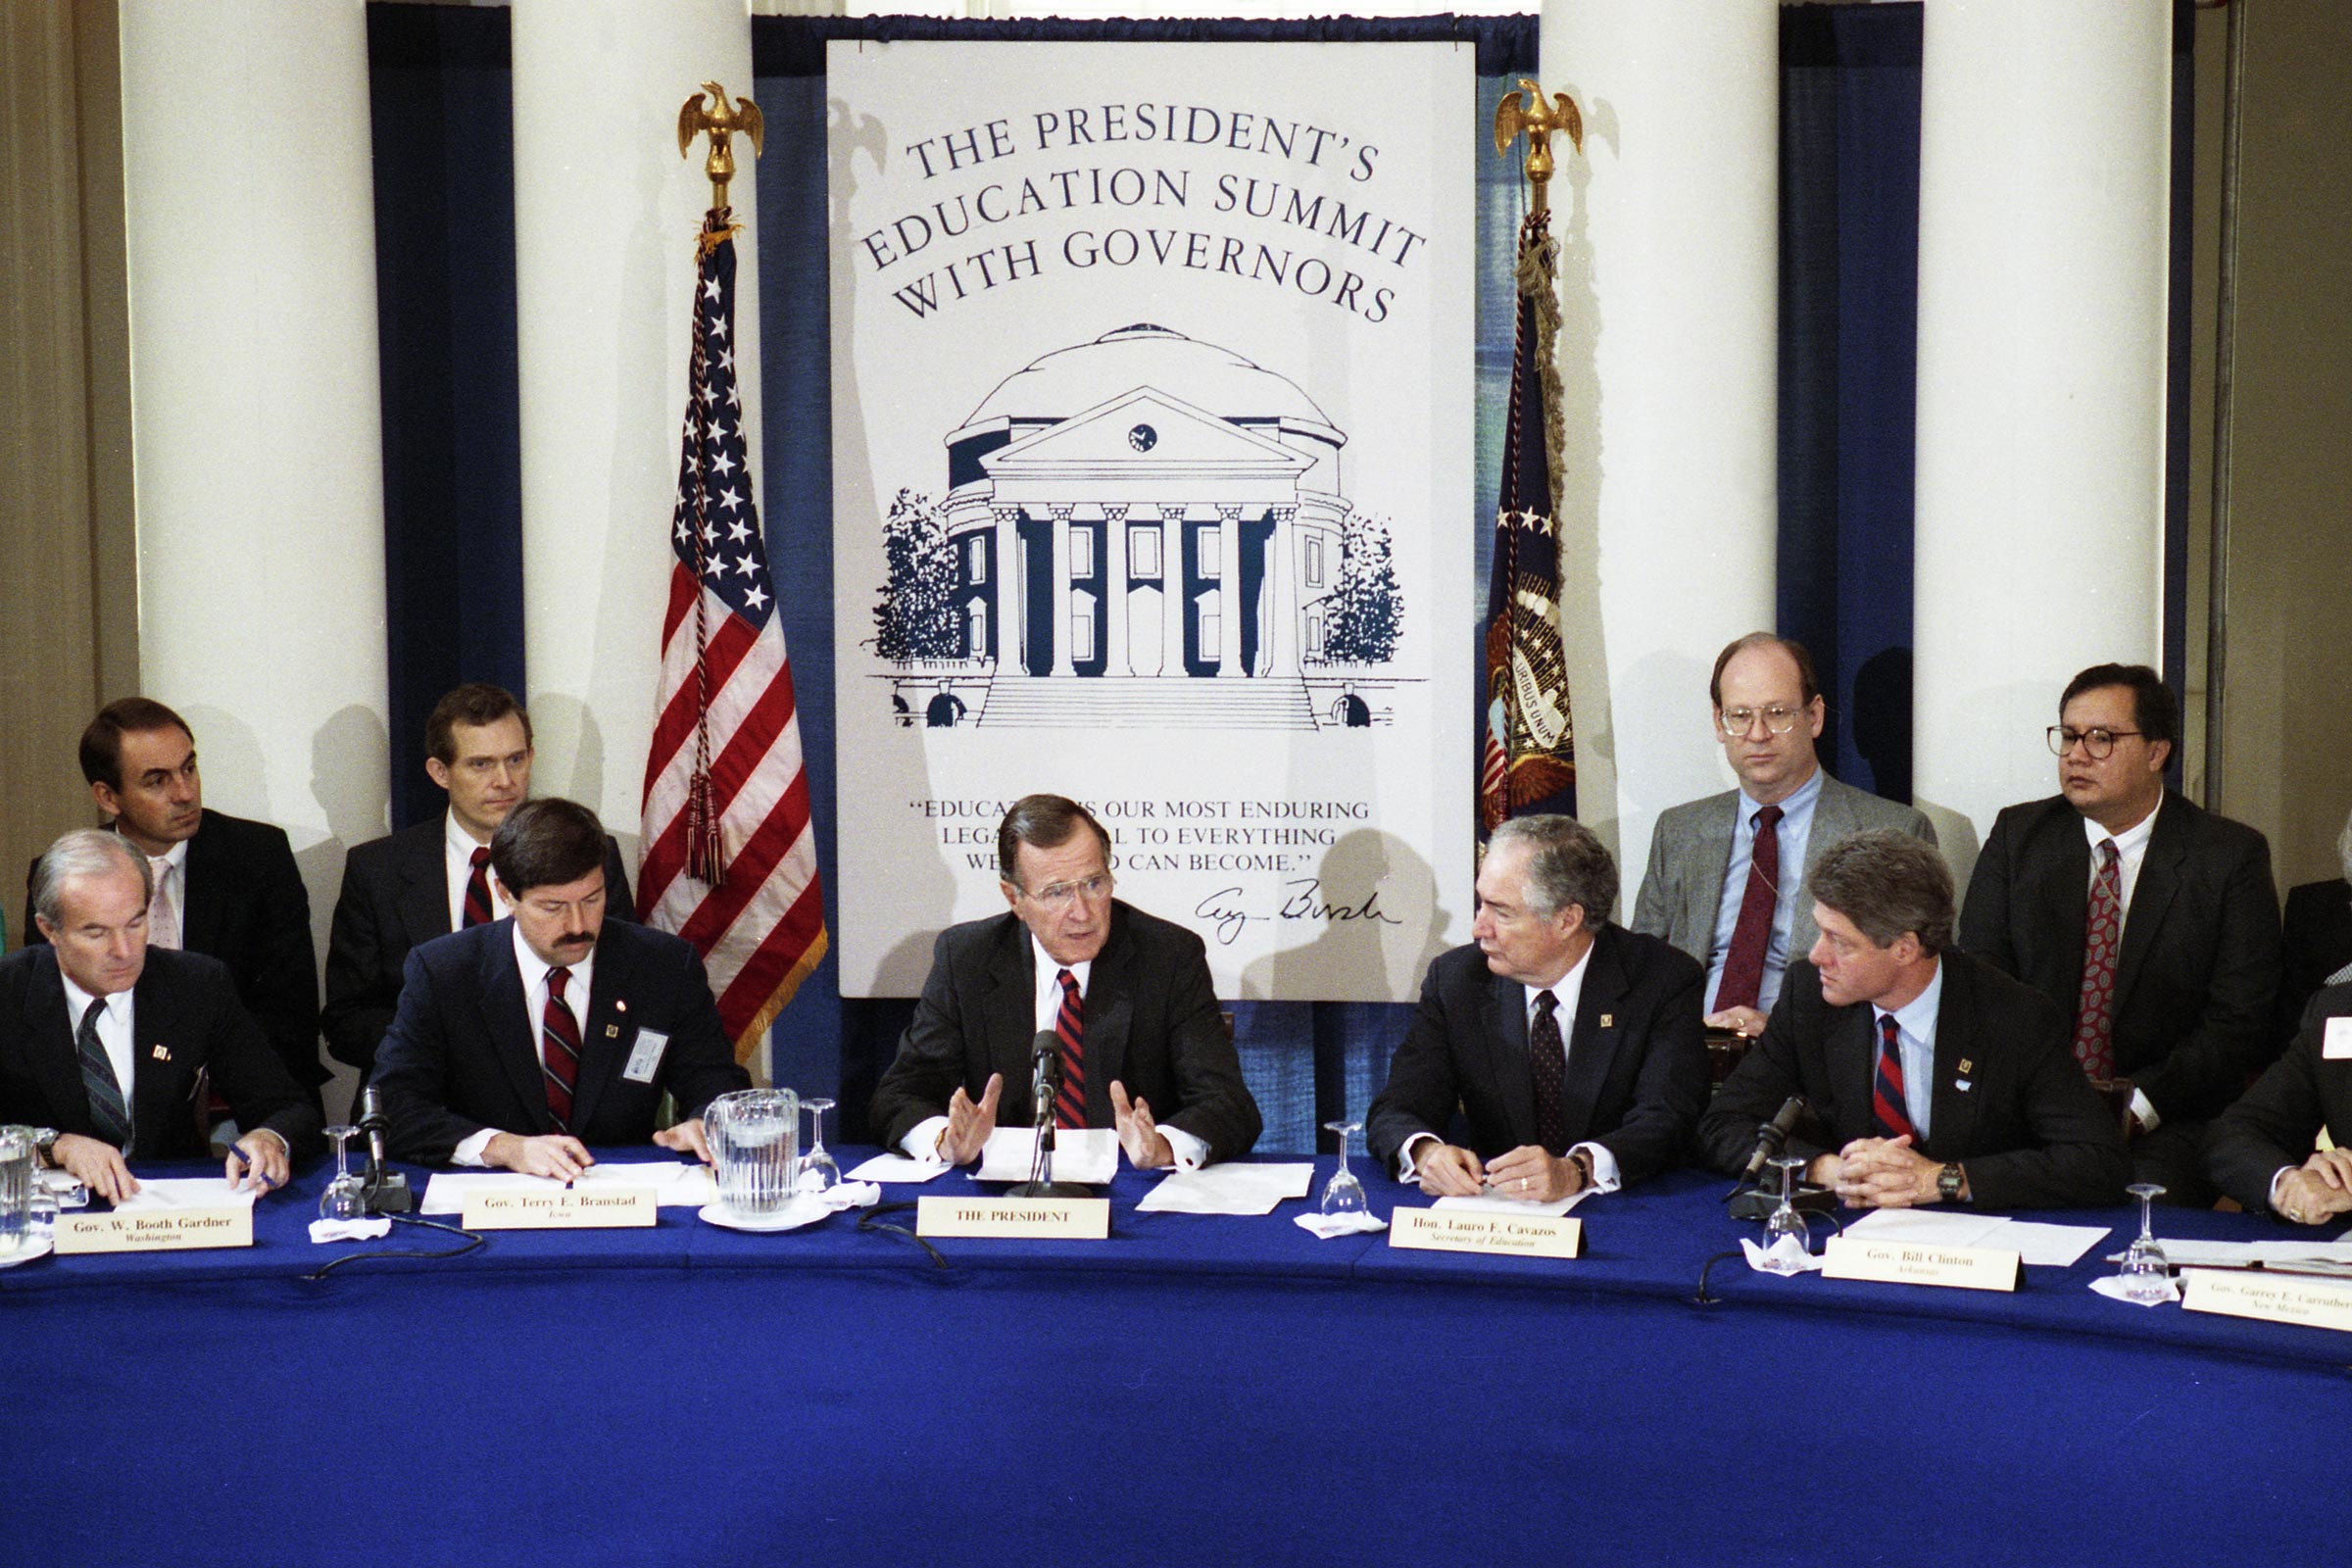 Clinton, right, at the time governor of Arkansas, and former President George H.W. Bush, center, at a governors' education summit at UVA during Bush's presidency.